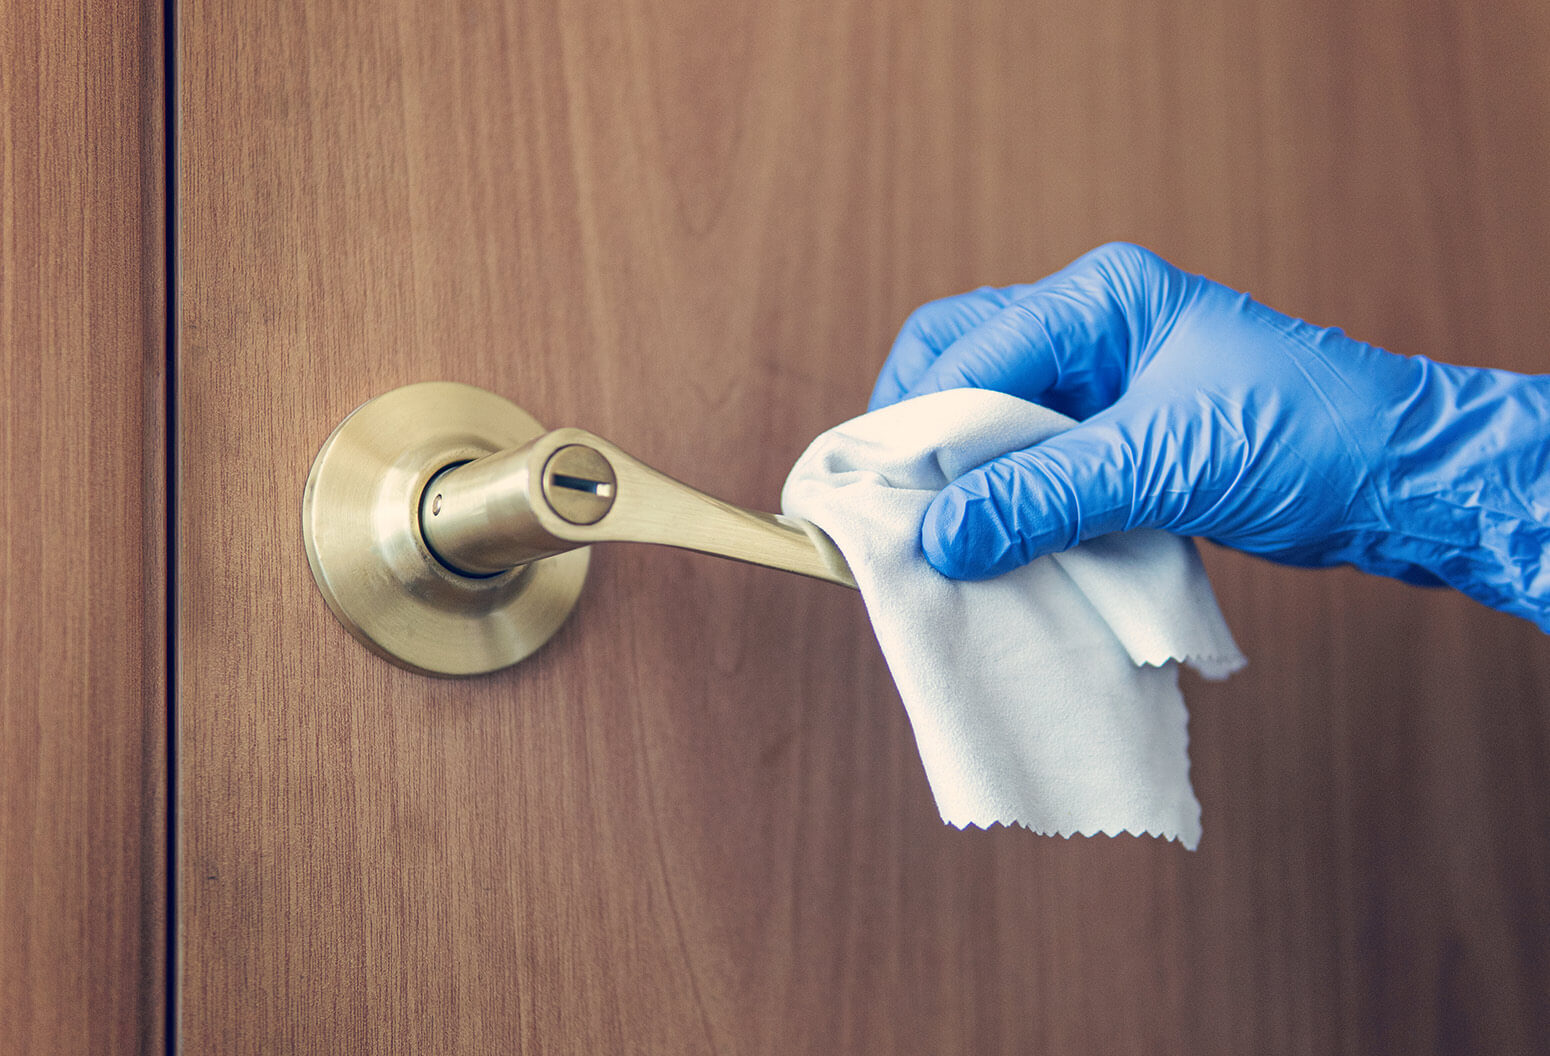 gloved hand cleaning a door handle